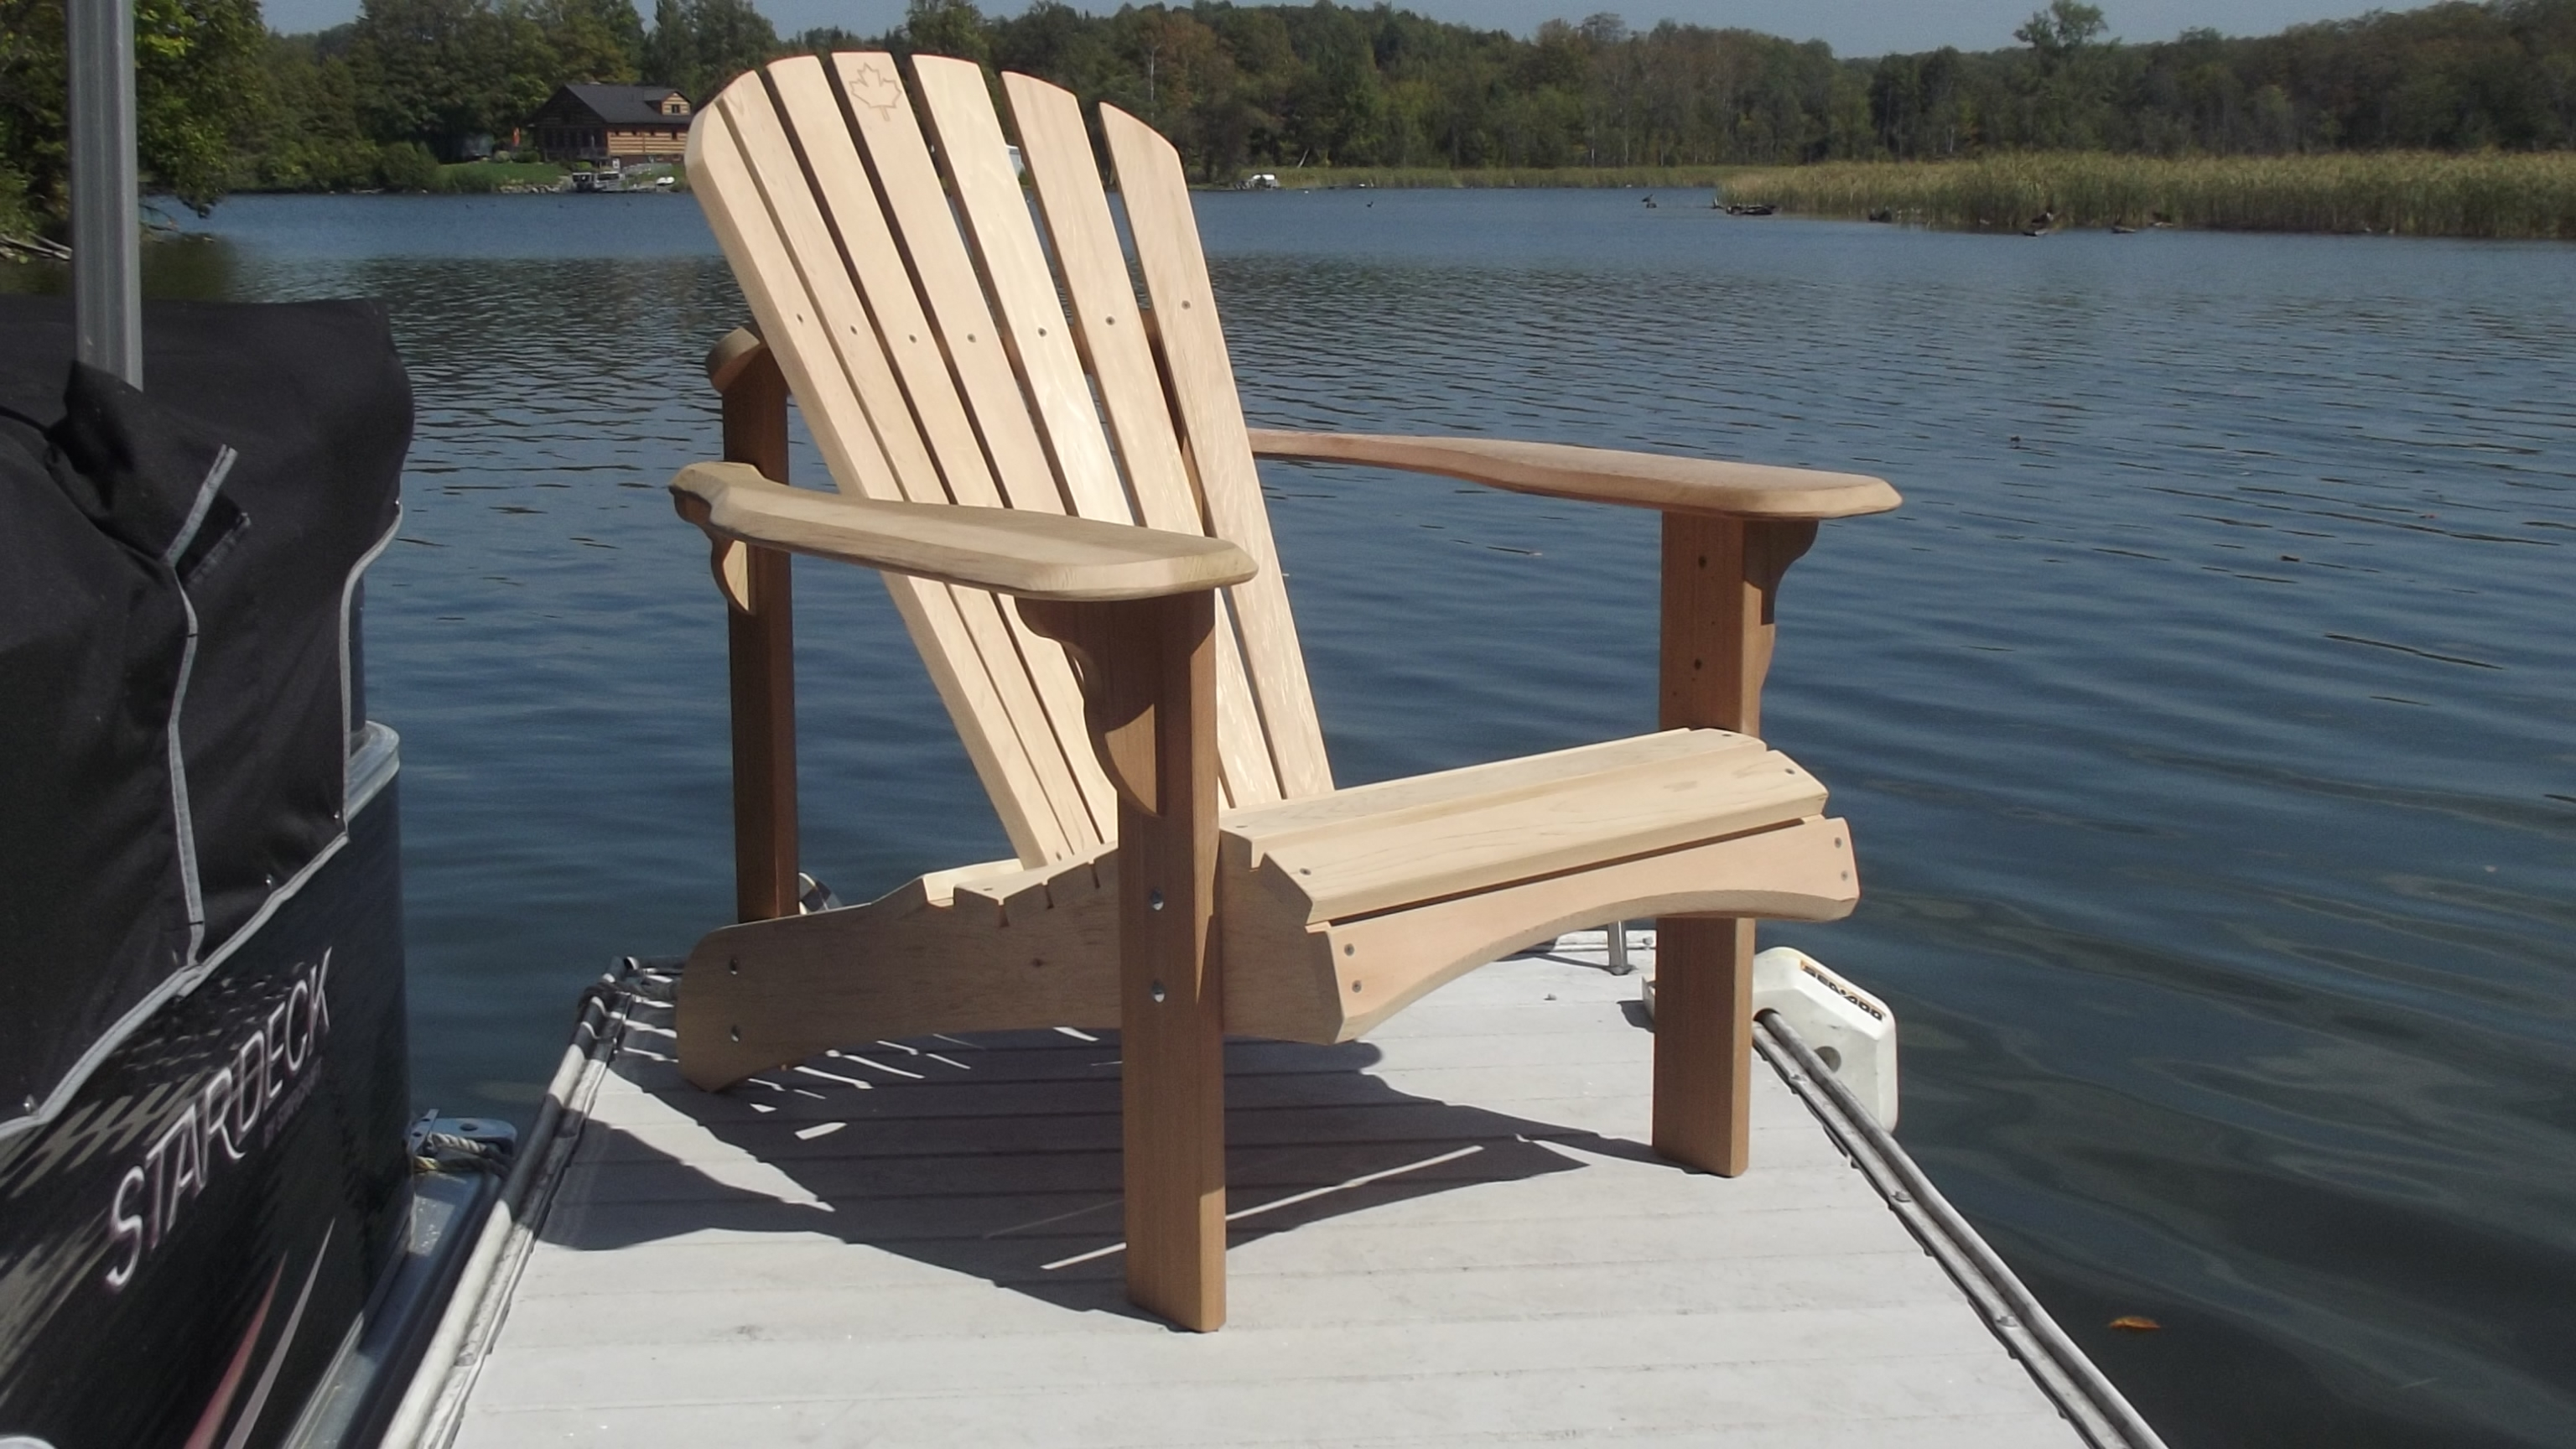 muskoka classic chair deluxe canadian whirlpools. Black Bedroom Furniture Sets. Home Design Ideas